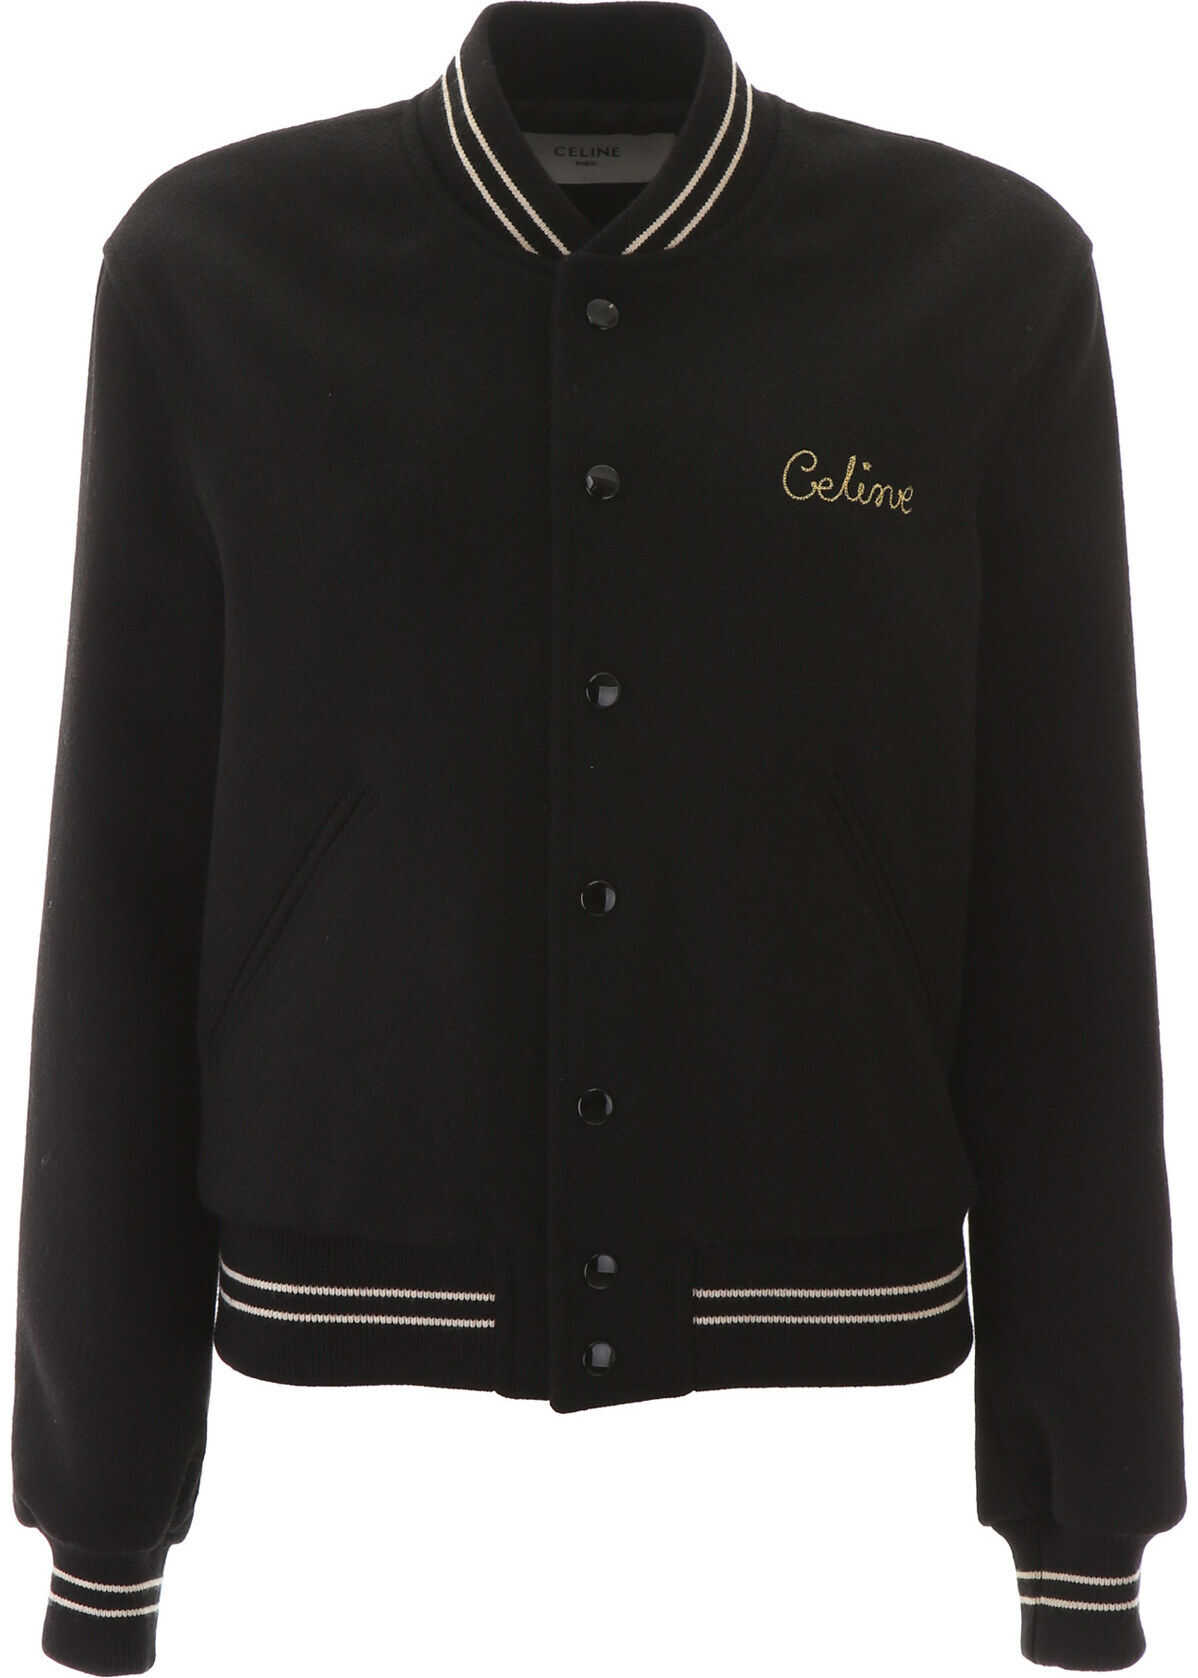 Céline Logo Teddy Jacket BLACK